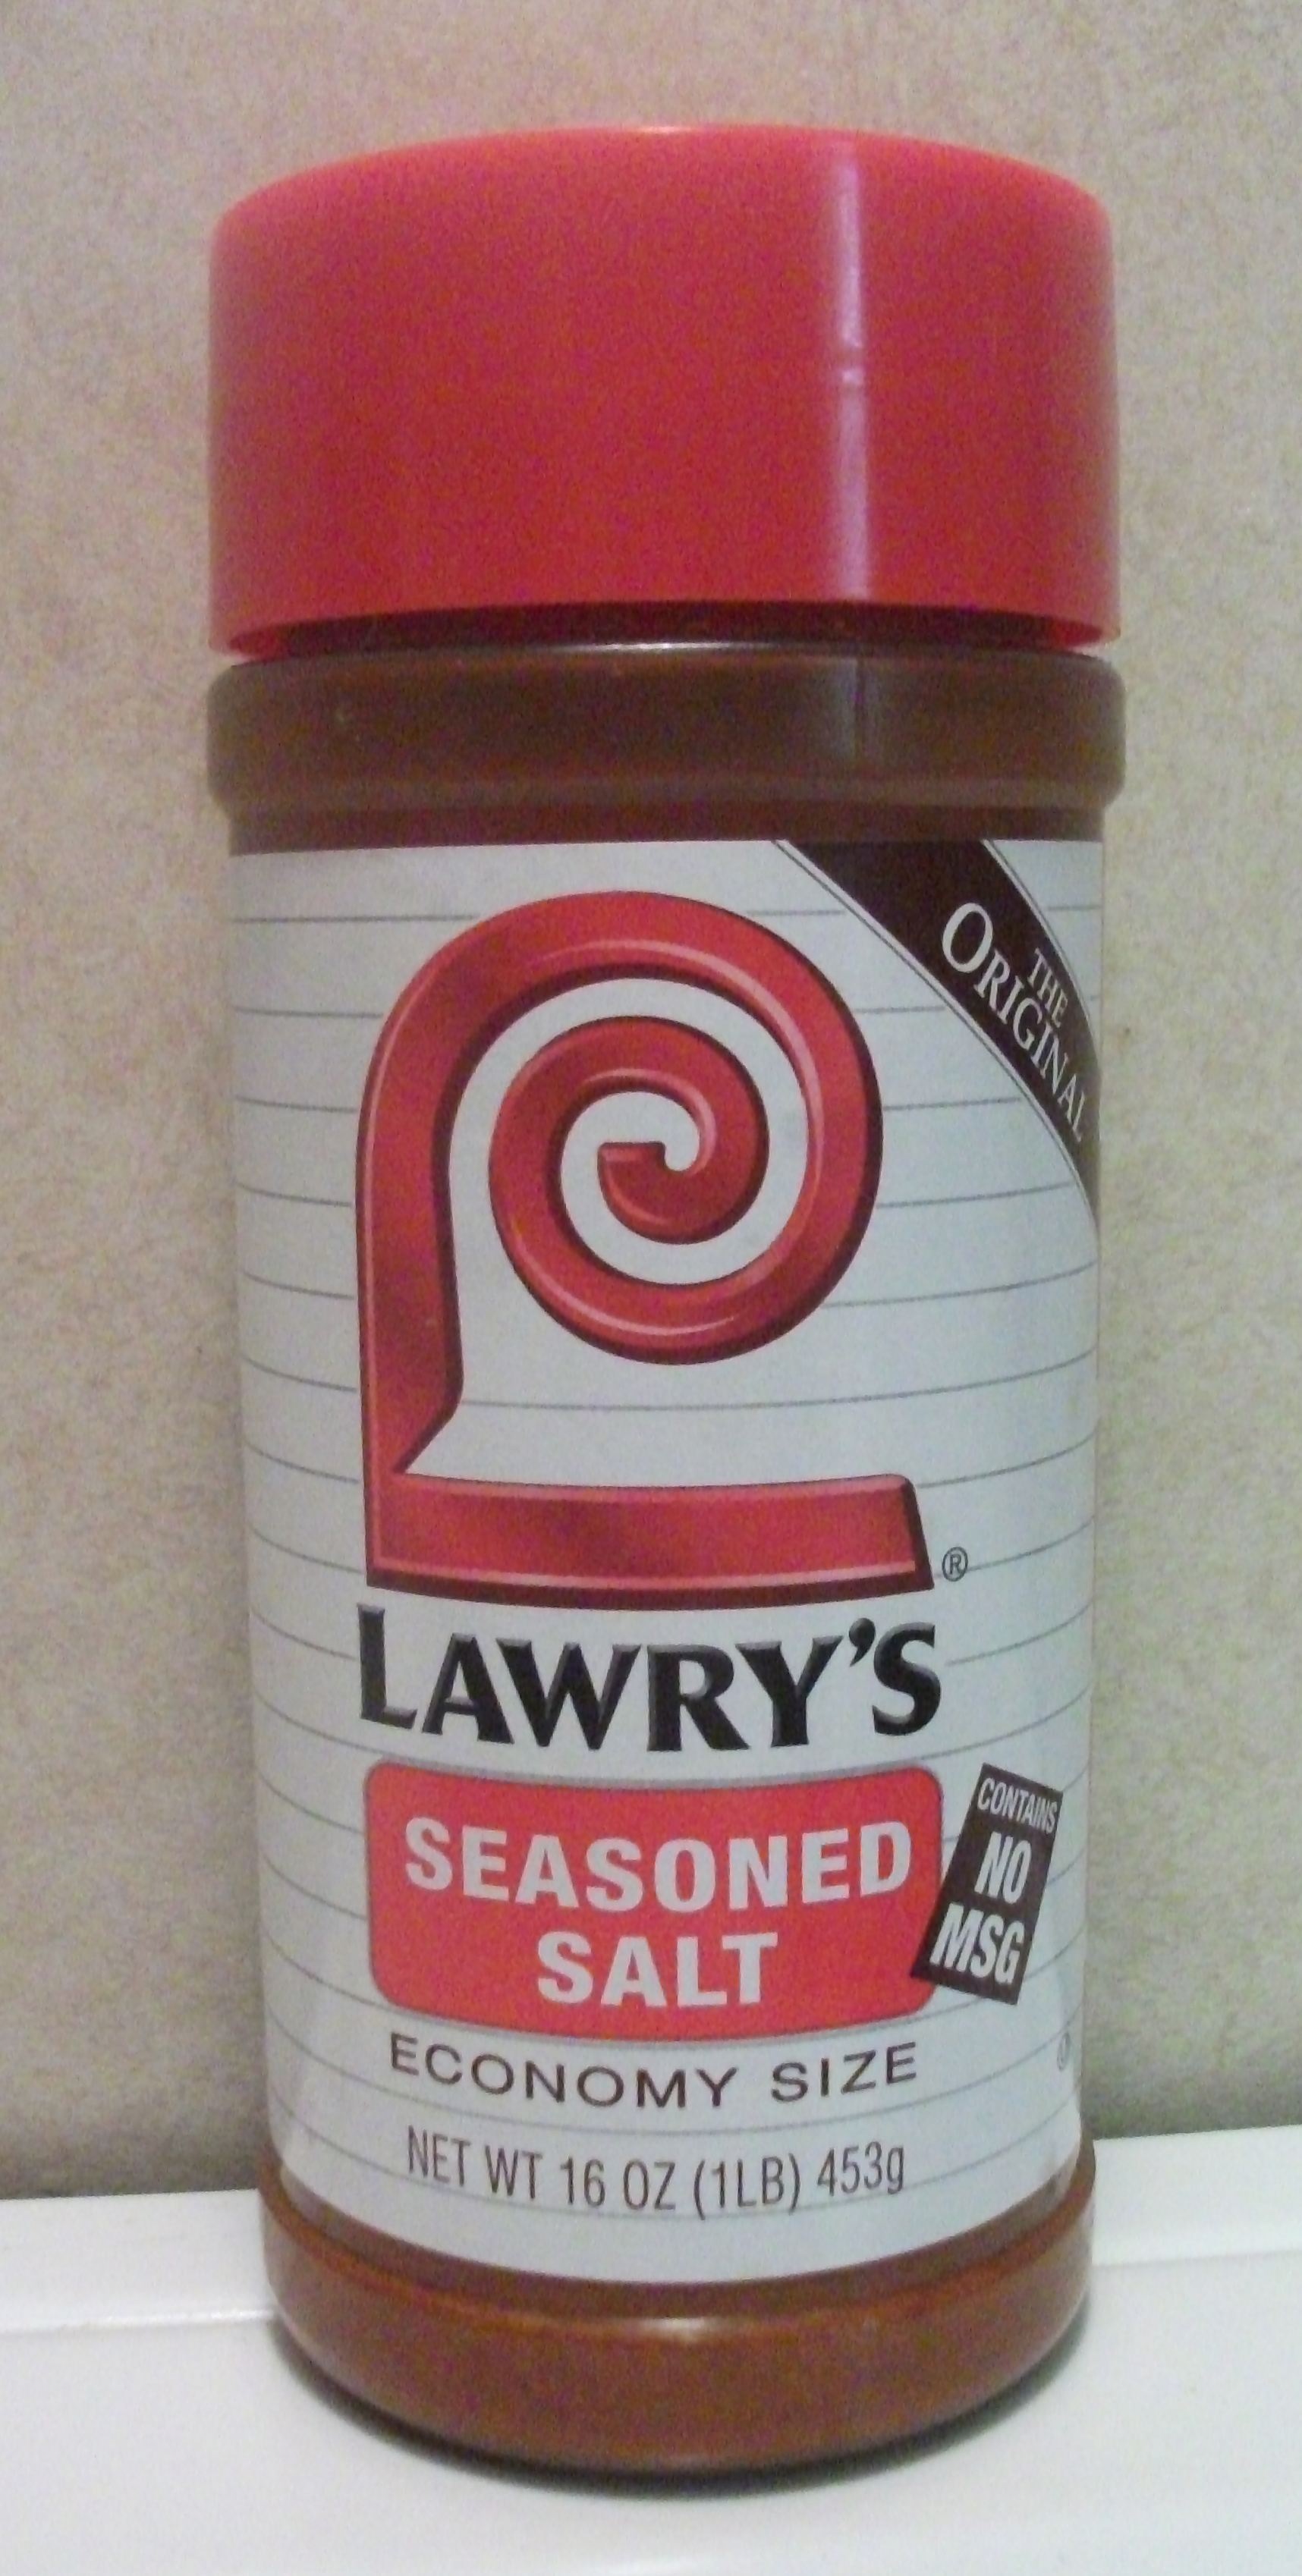 Seasoned Salt Brands Lawry 39 s Seasoned Salt